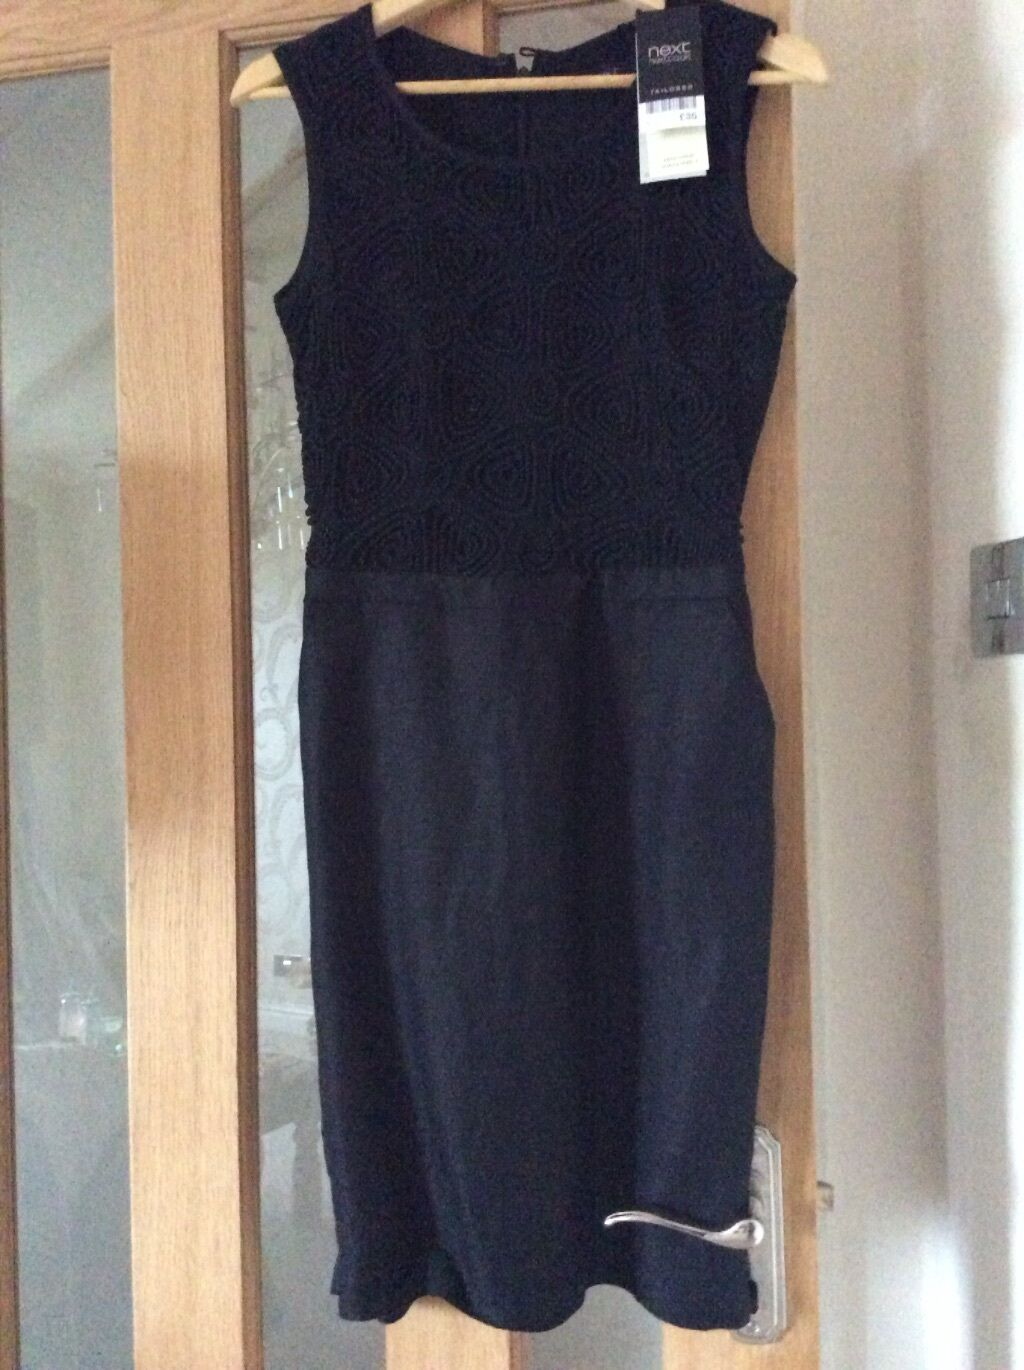 black linen dress size 6 from next brand new with tags rrp 35.00